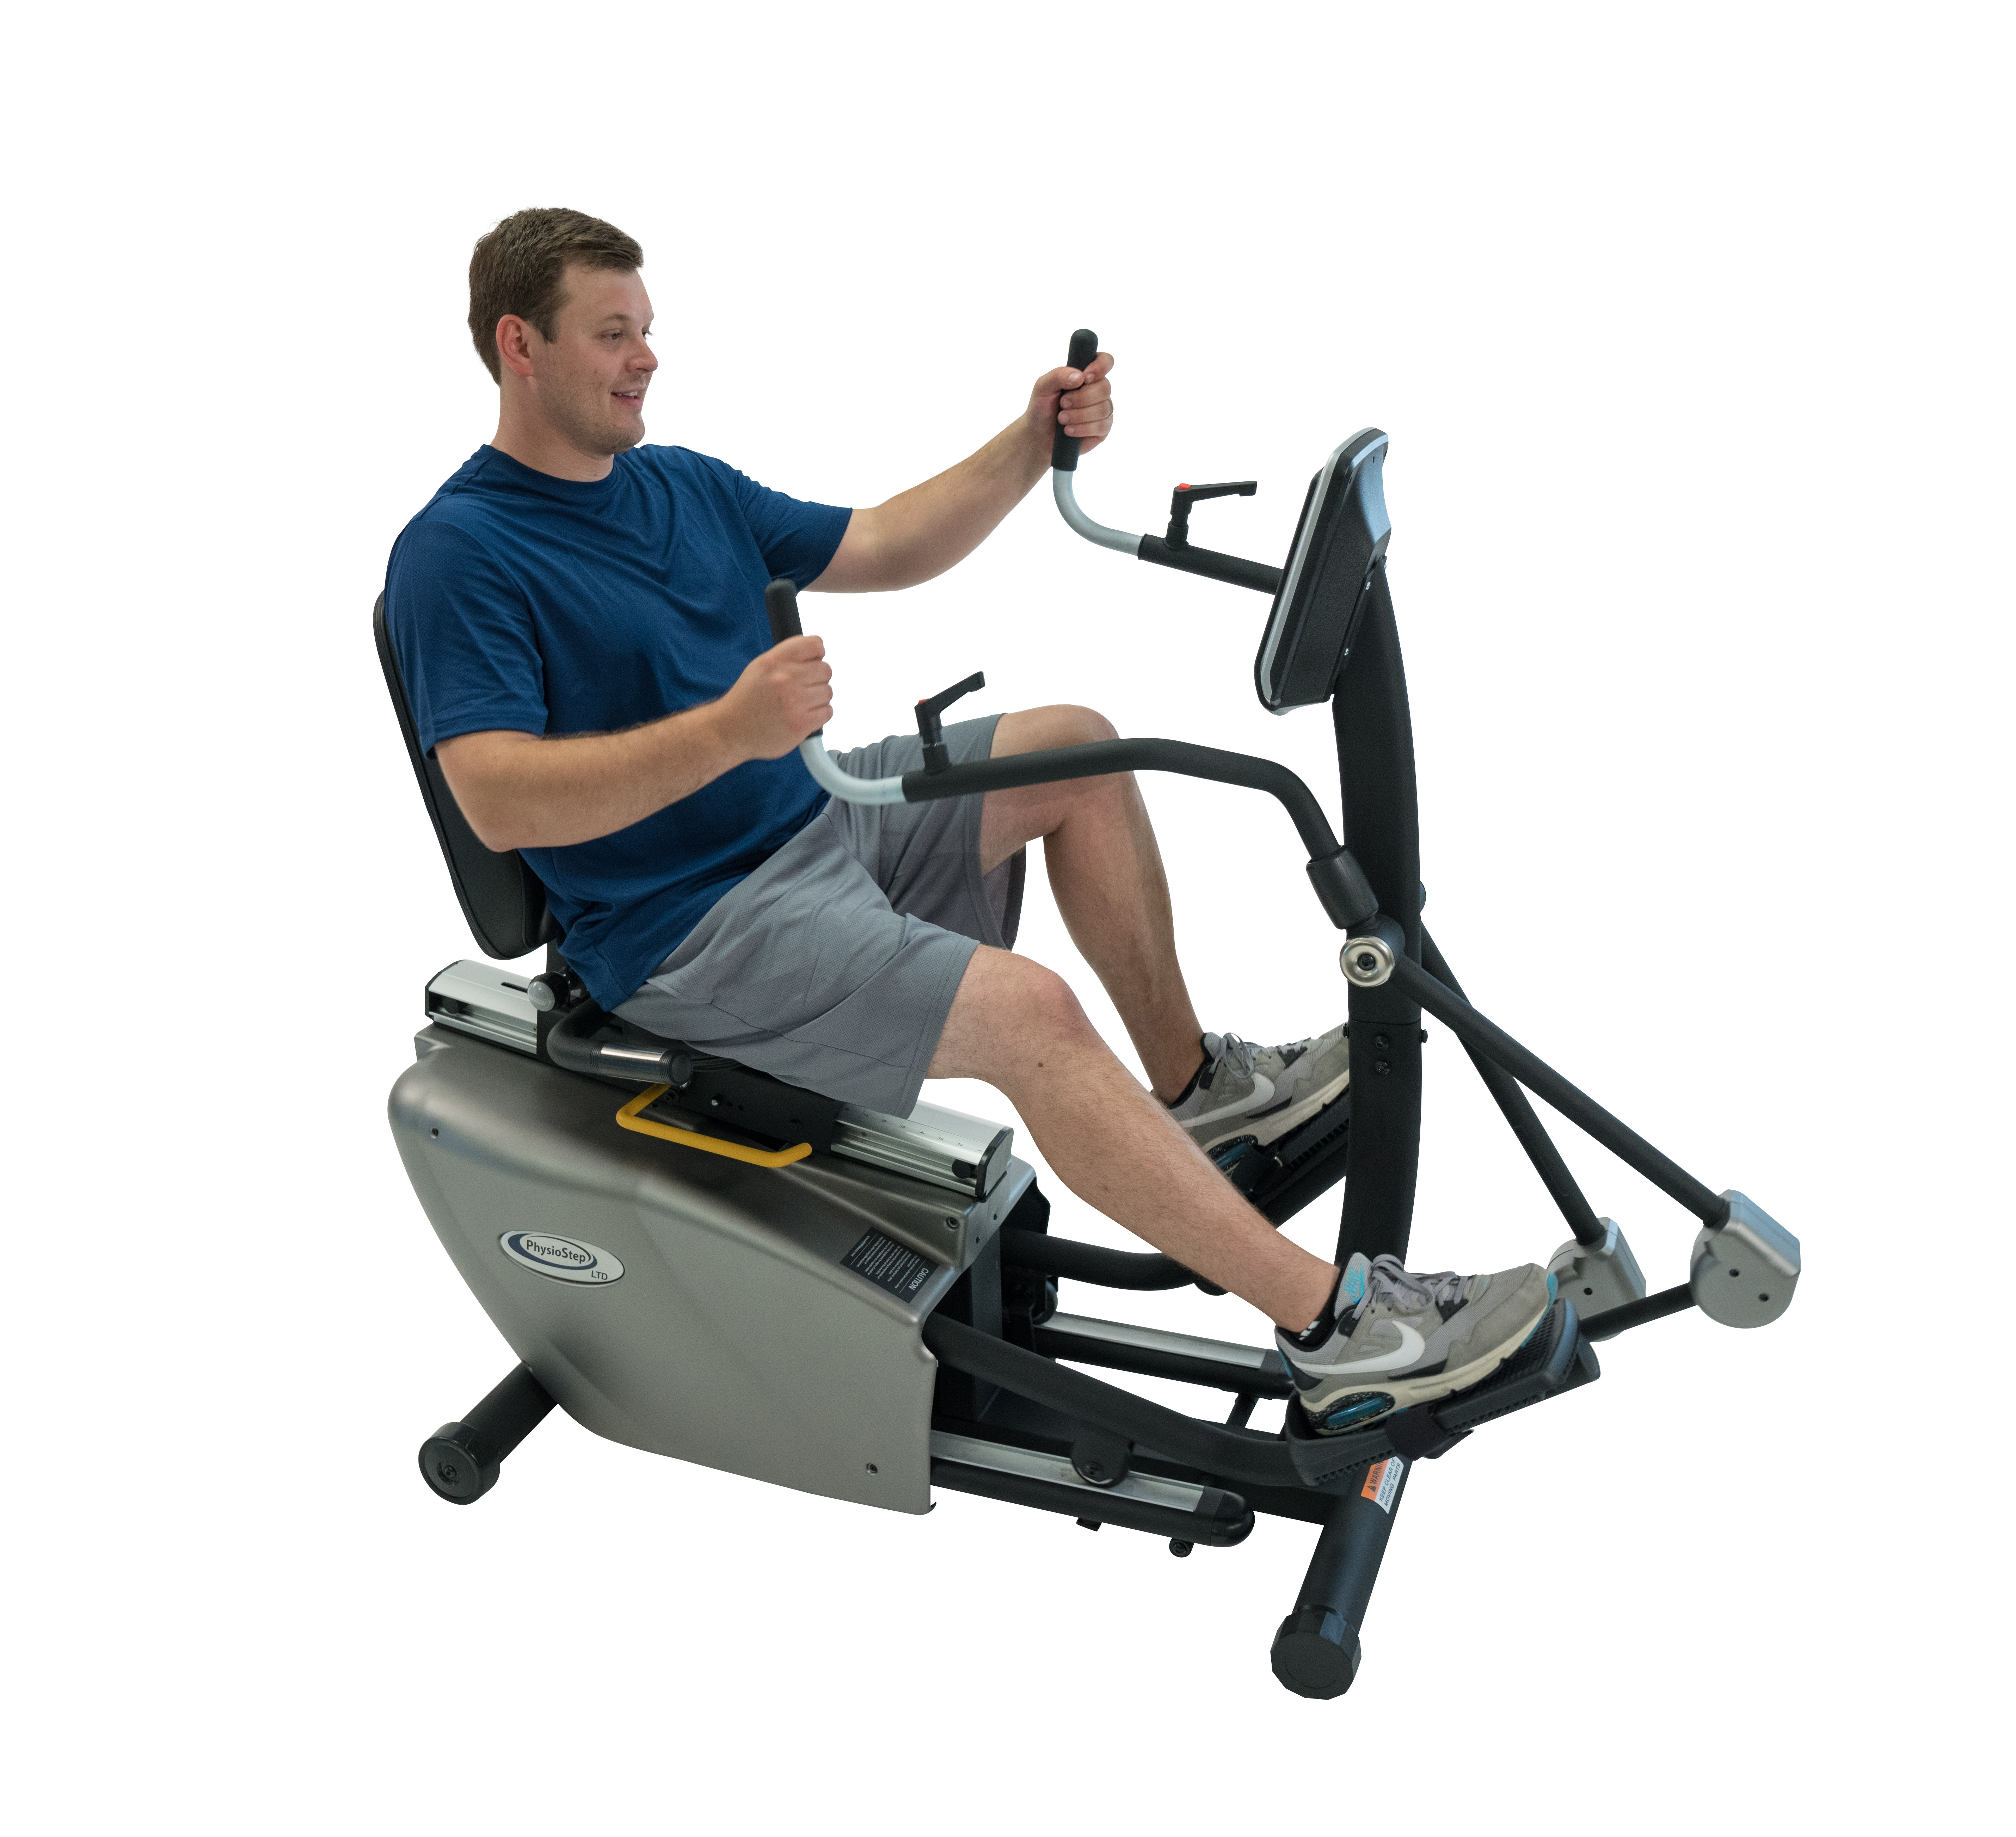 Compare The PhysioStep To The Nustep Recumbent Cross Trainer